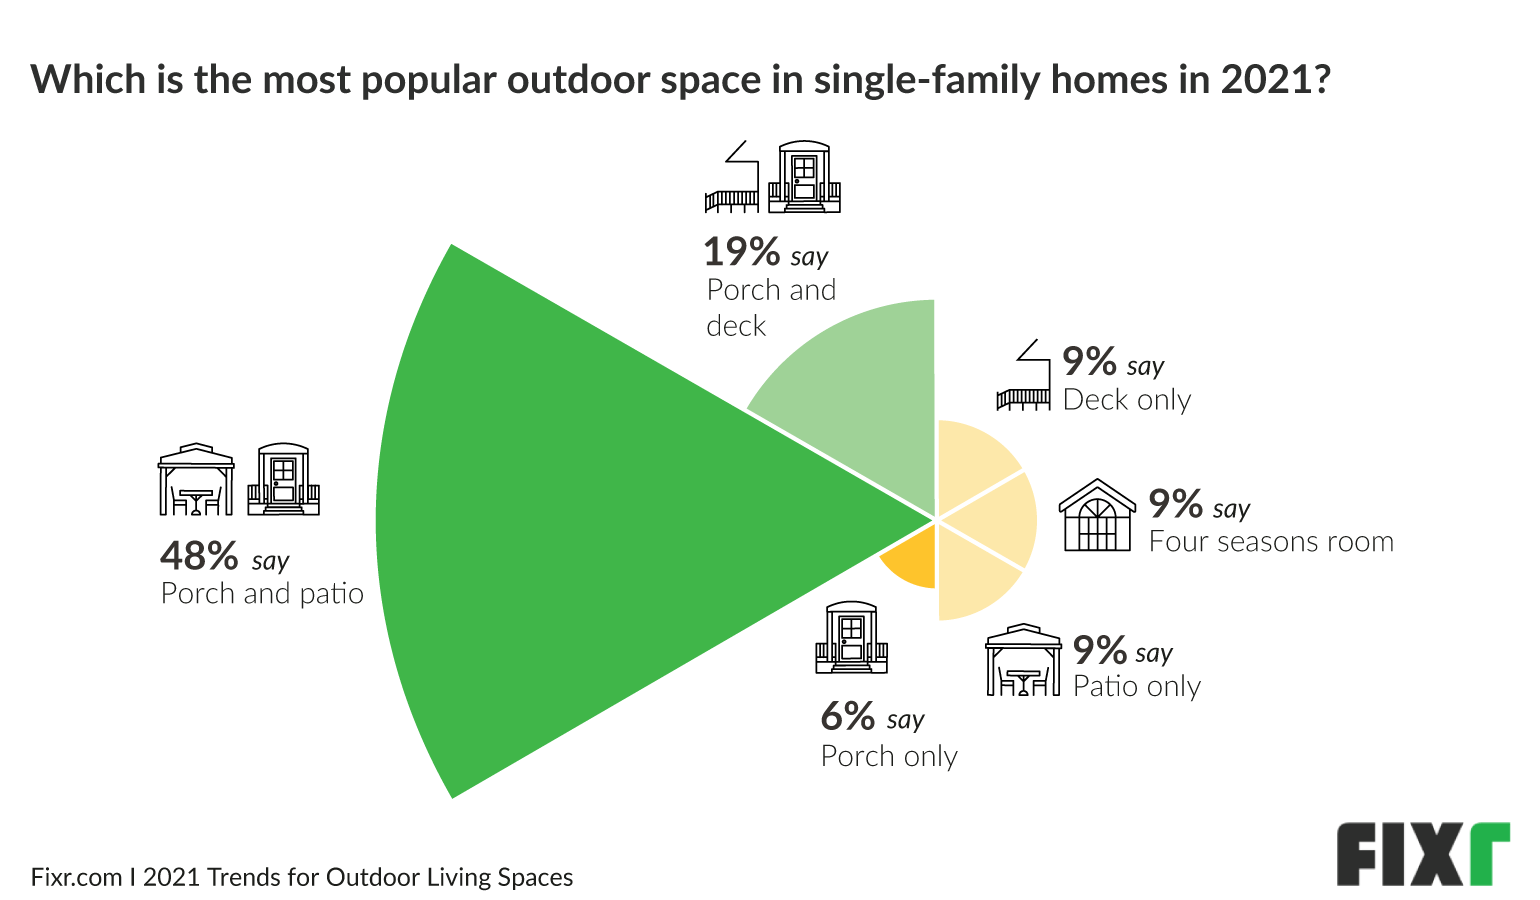 Patios and porches are the most popular outdoor living designs in 2021